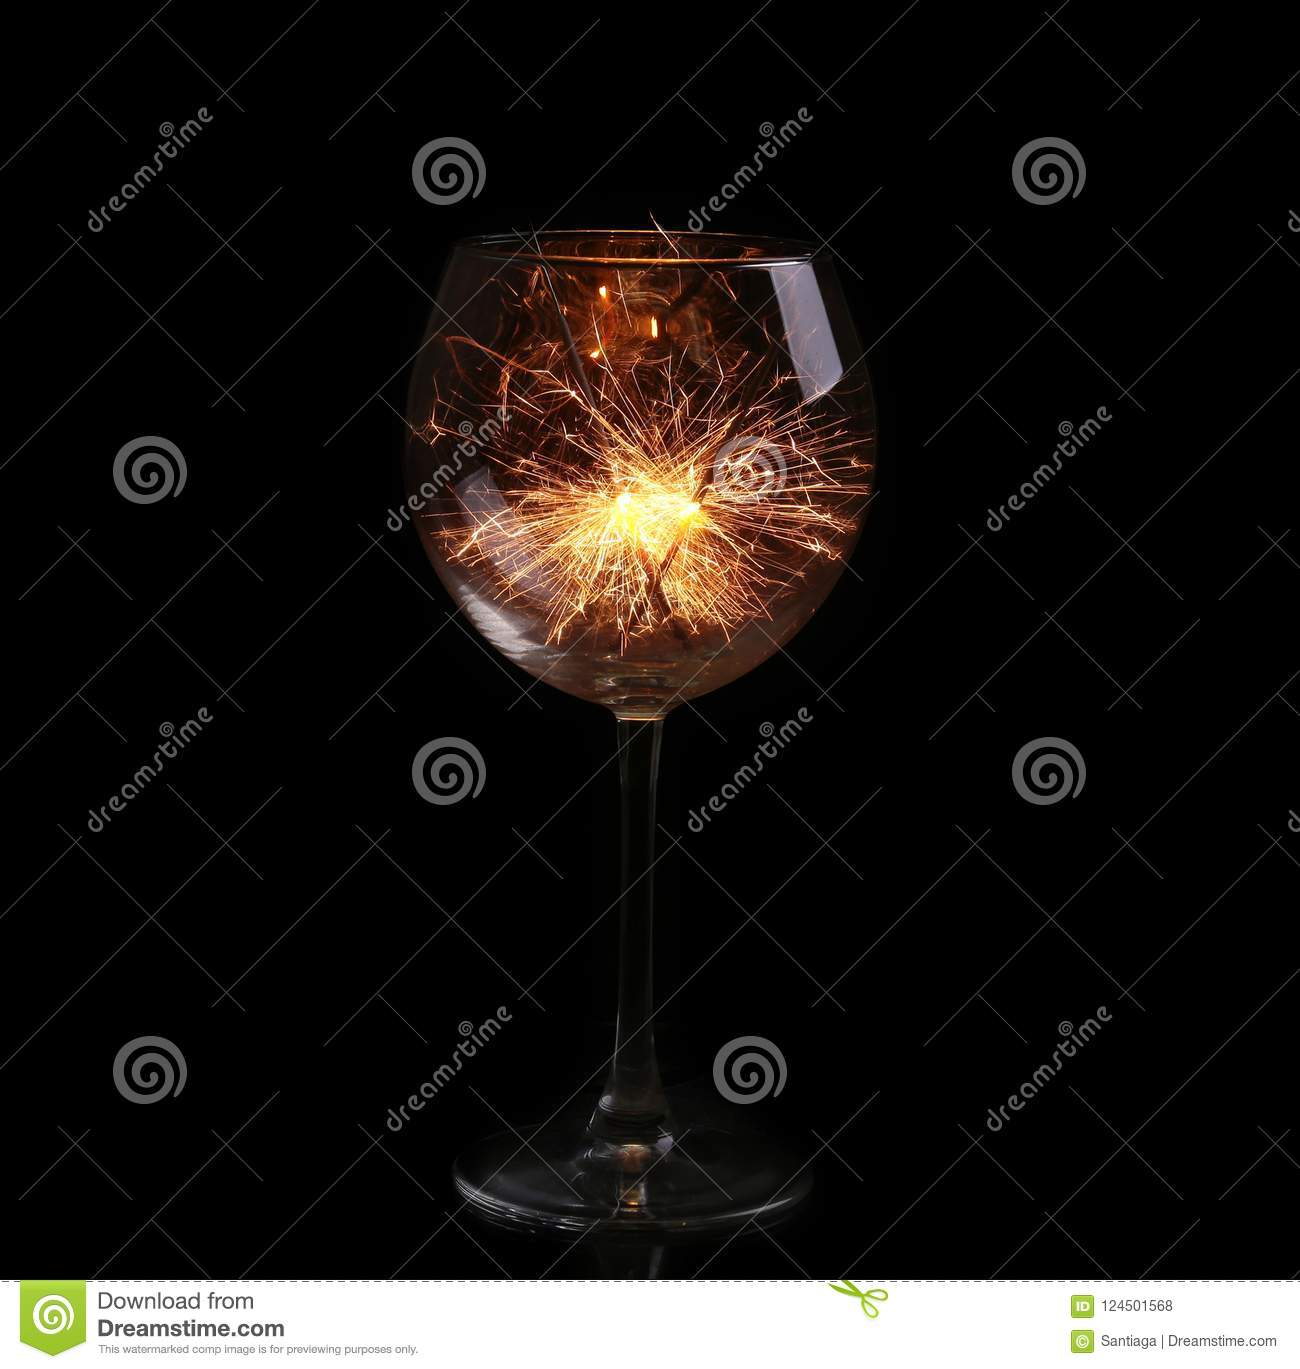 Wine glass with a sparkler.